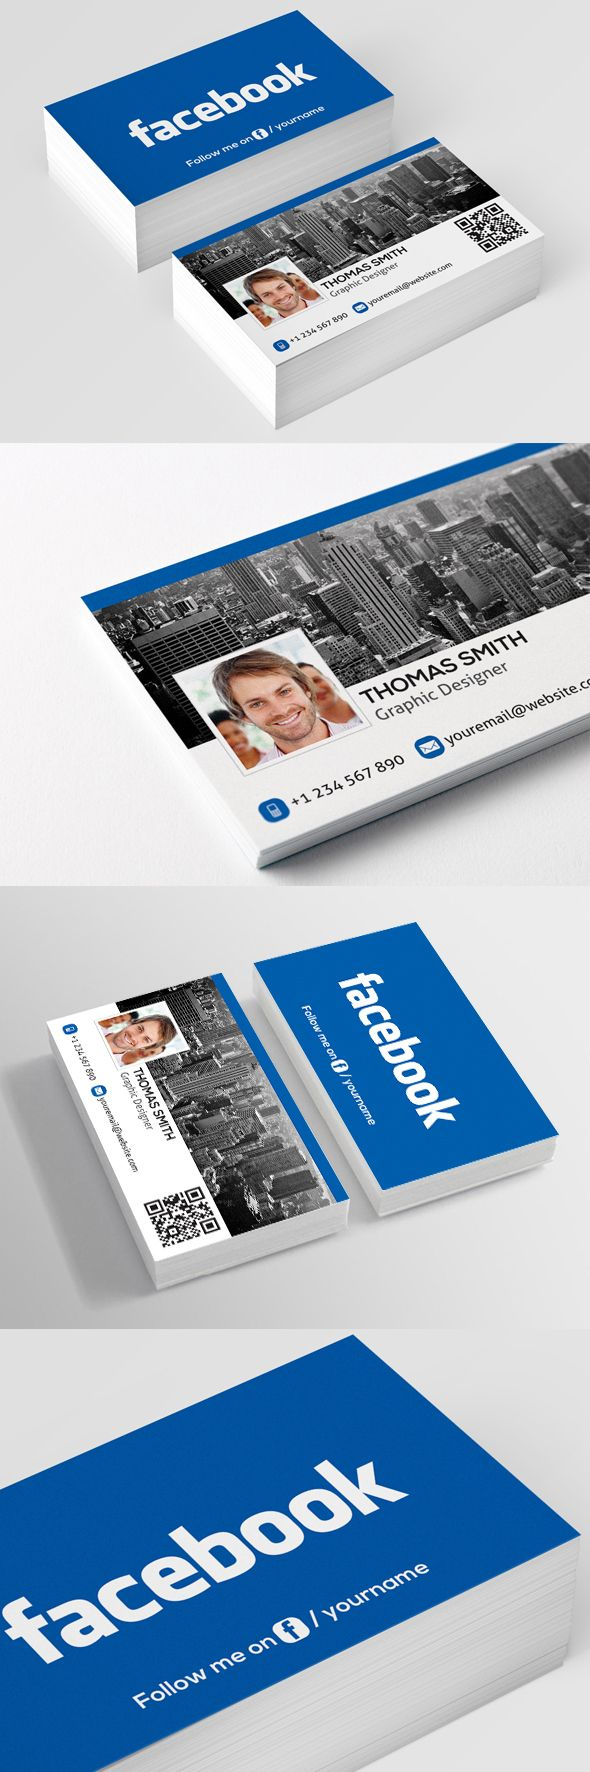 176 best bussiness cards images on pinterest visit cards interesting free facebook business card template with qr code available for download as psd file cheaphphosting Images